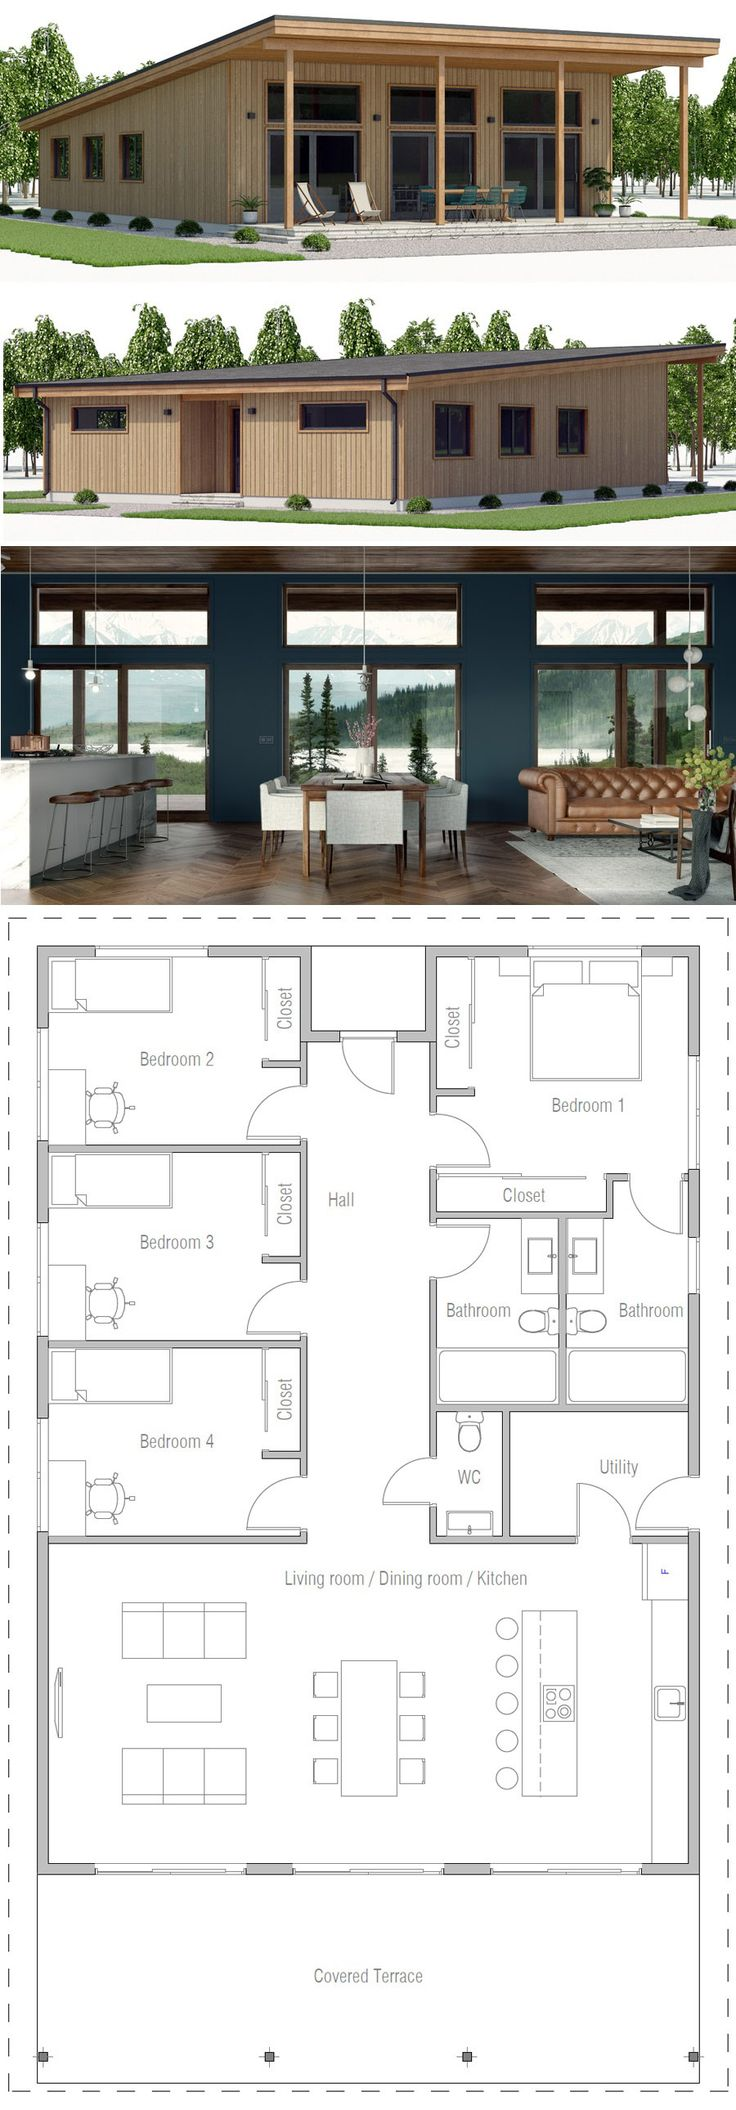 Architecture, Home Plans, House Plans, Floor Plans House Designs #homedecor #newhomes #homeplans #houseplans #concepthome #adhouseplans #archdaily #archilovers #dwell #housedesigns #modernhousedesign